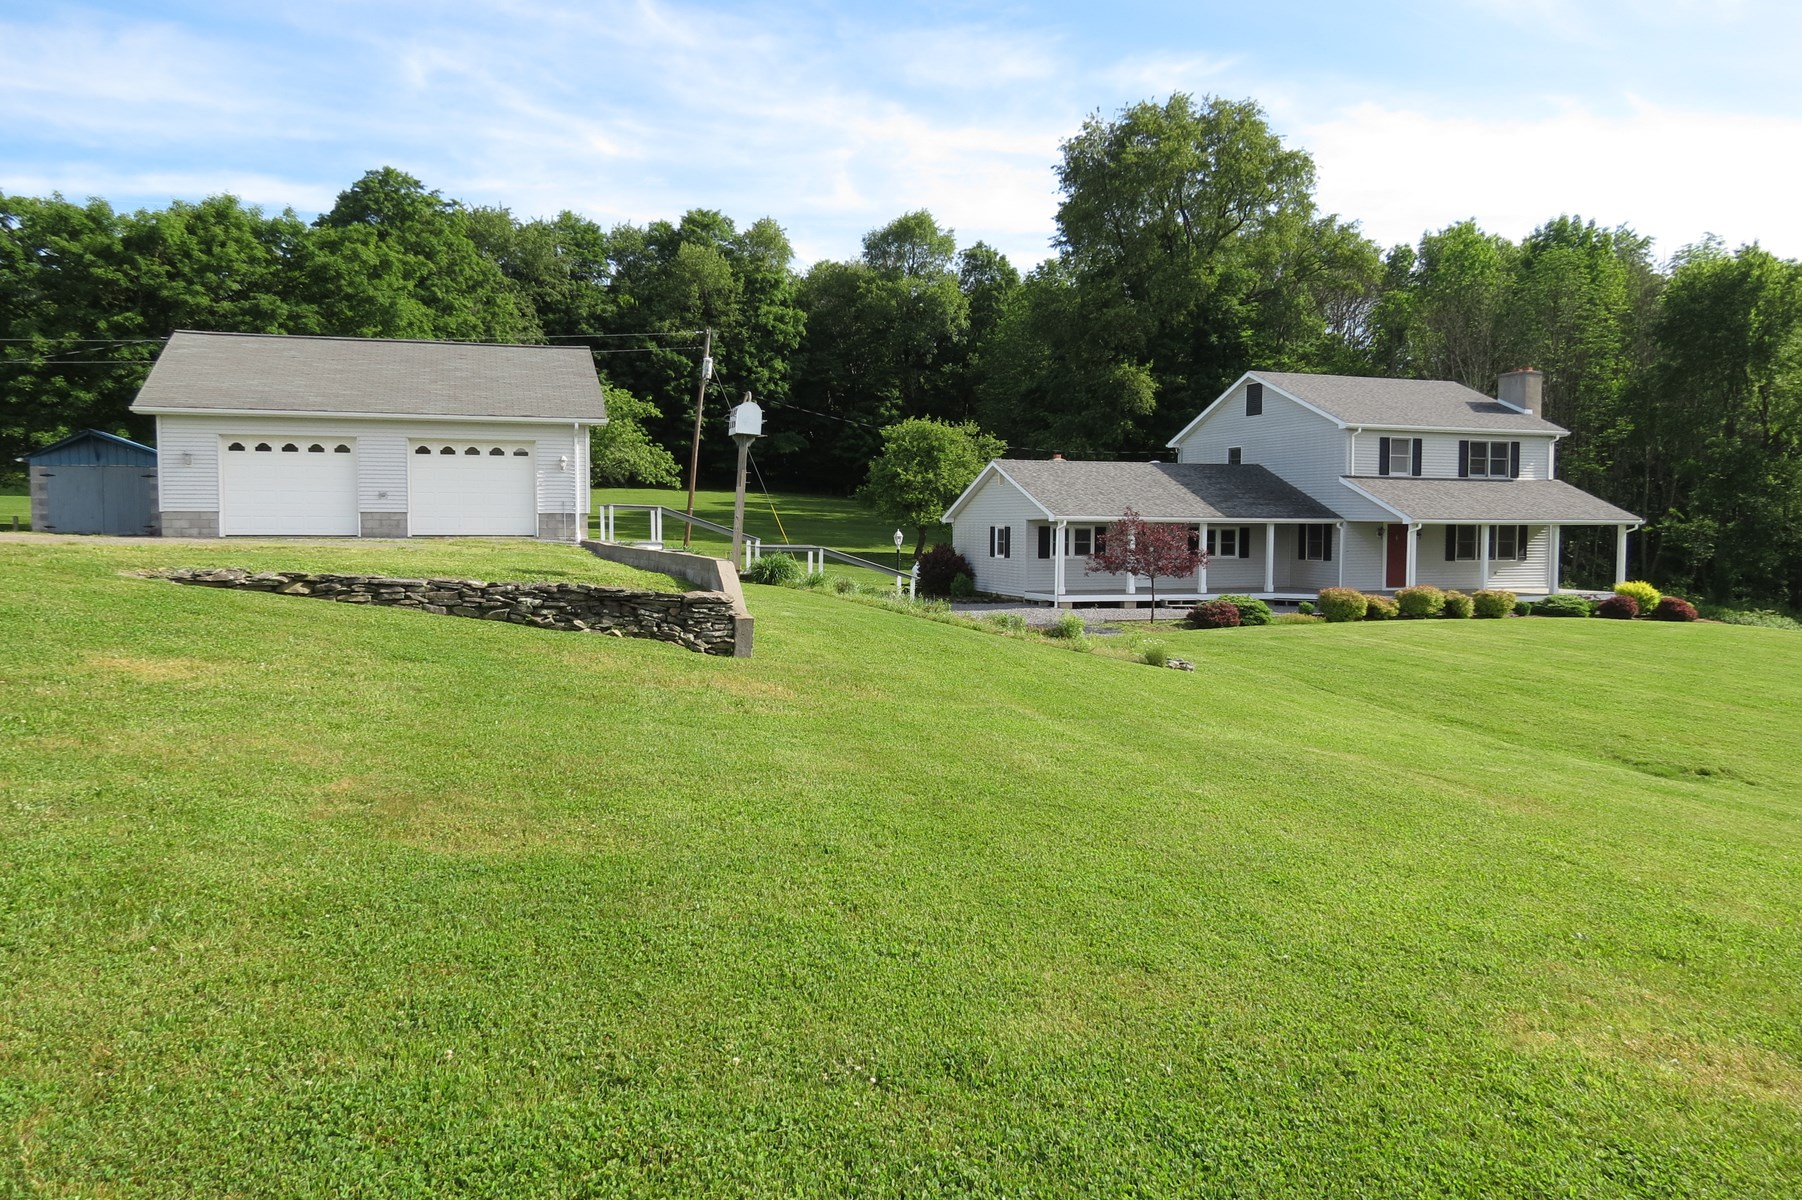 Country Home on 30+ Acres For Sale at Auction Wellsboro, PA